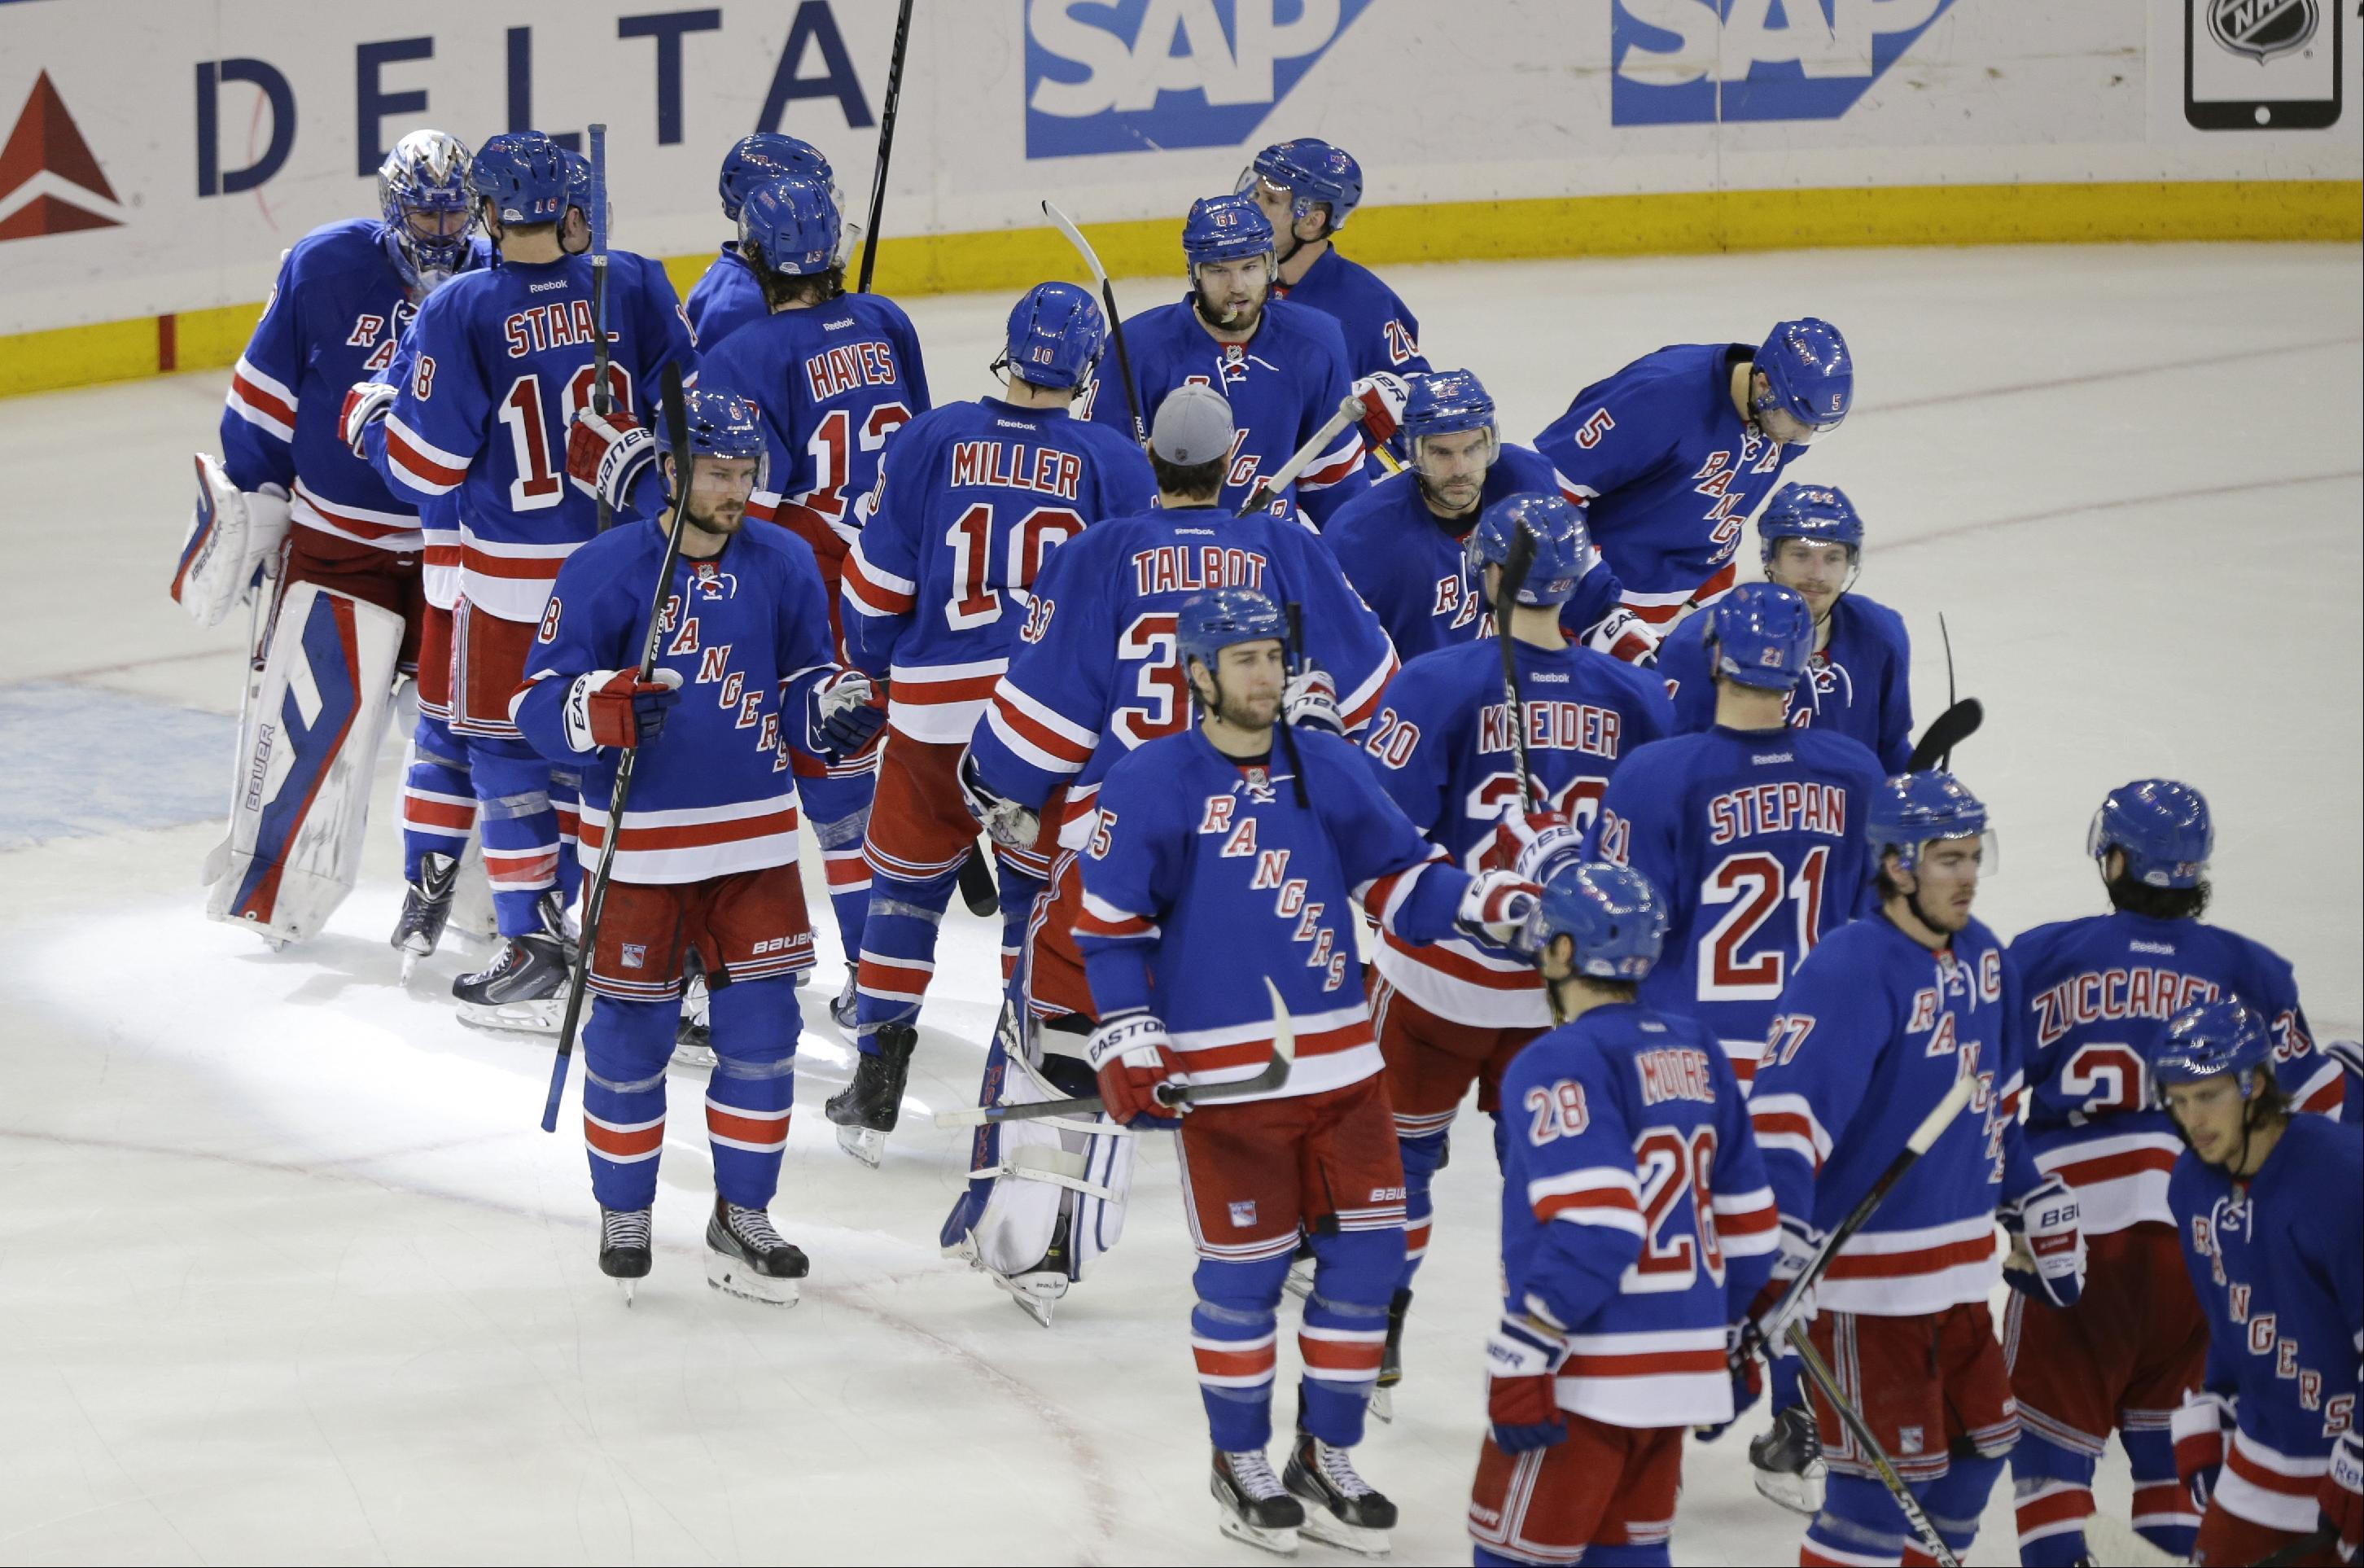 Rangers beat Capitals 4-2 for 7th straight win